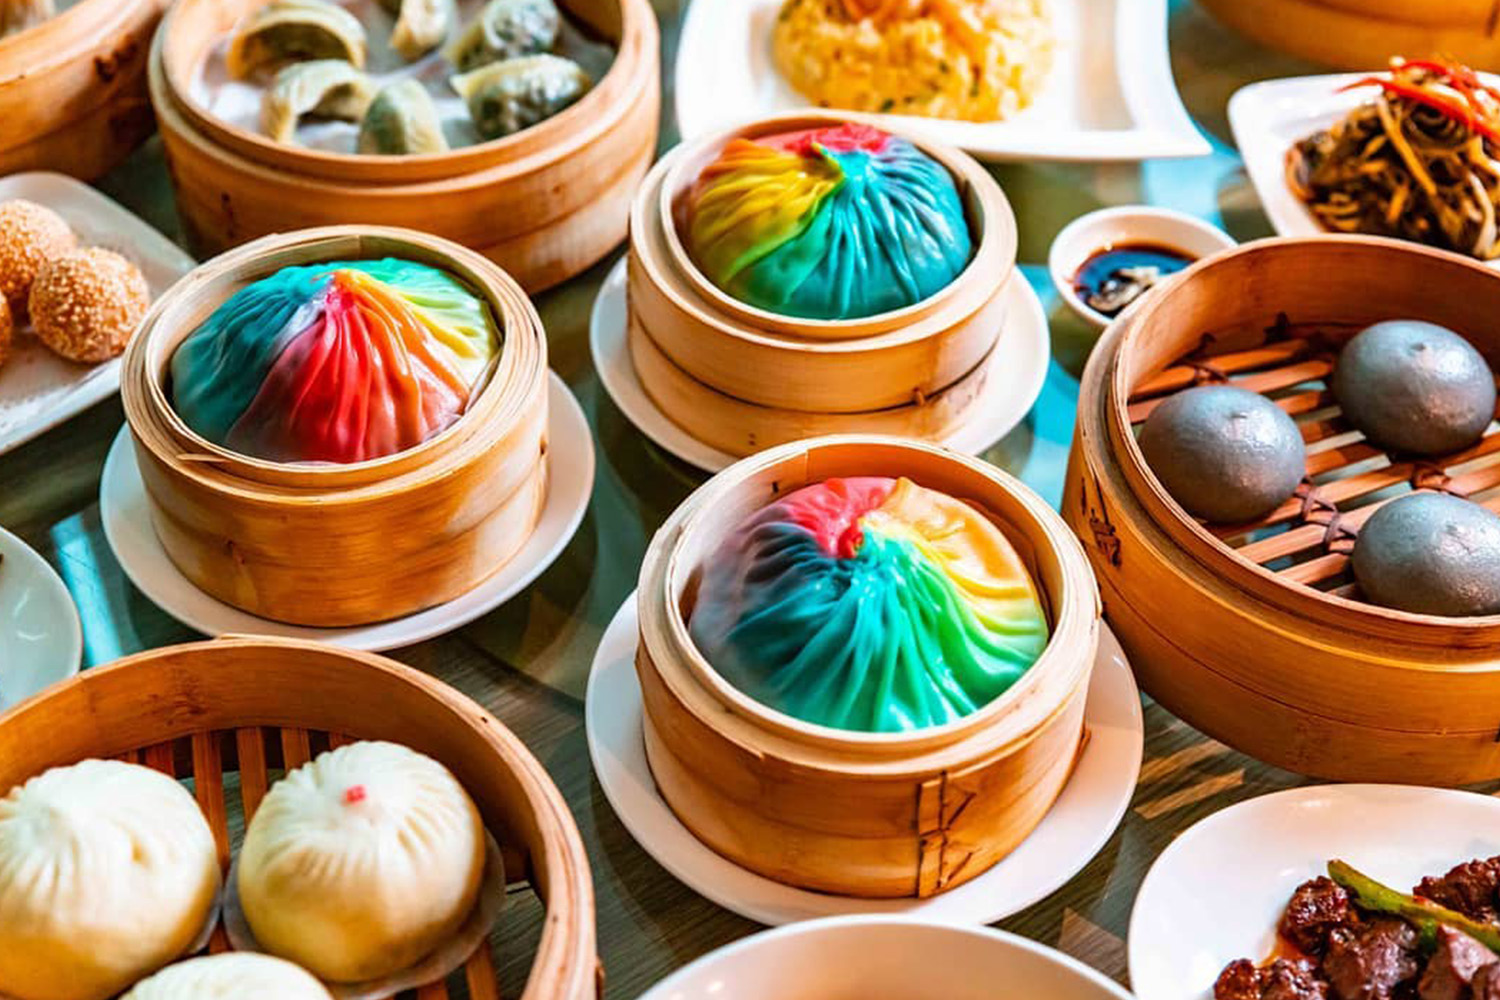 You can now buy giant rainbow dumplings in Melbourne and Sydney